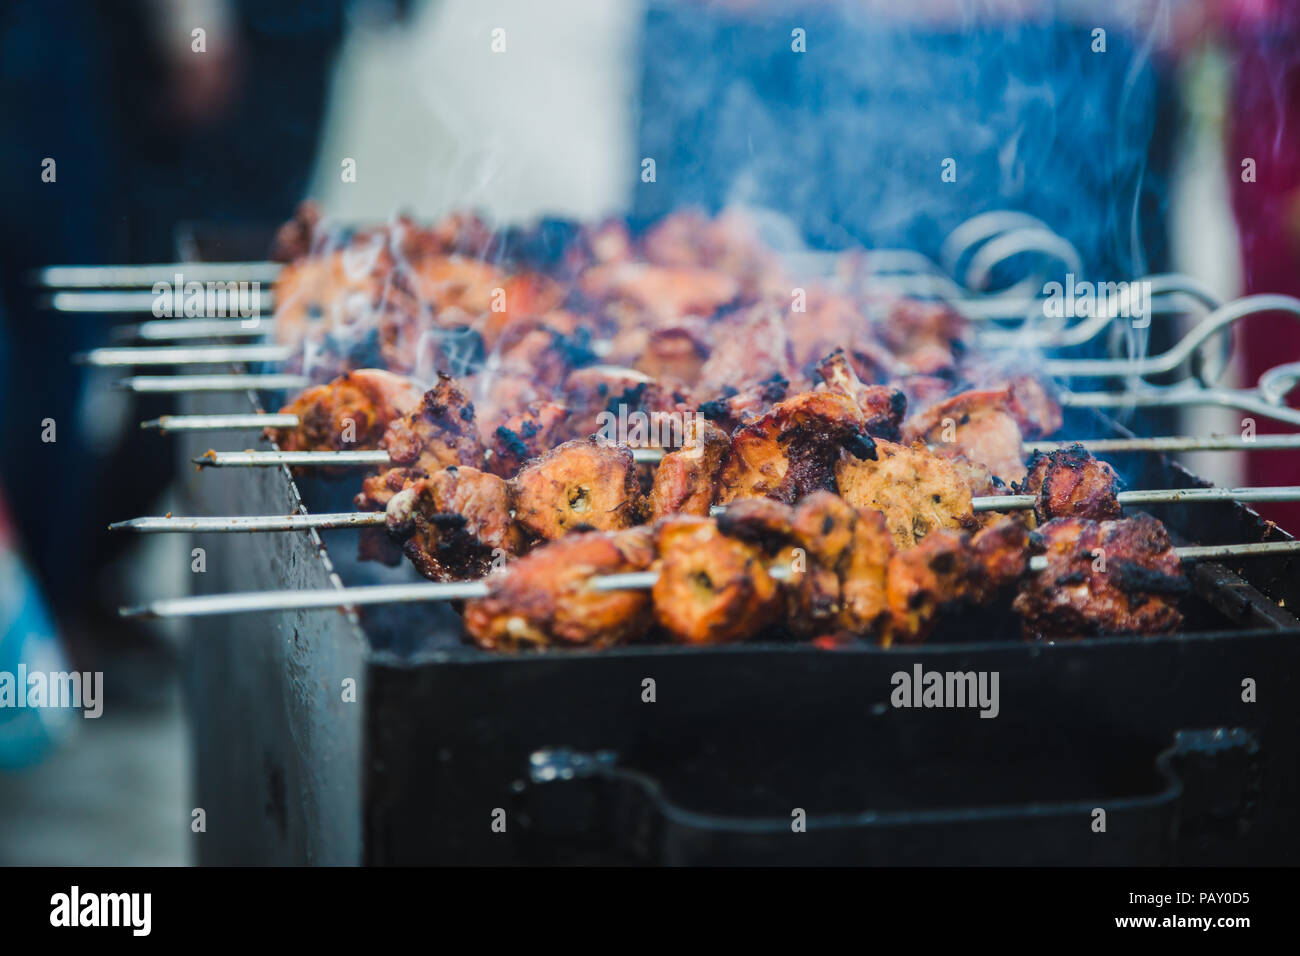 Bbq Chicken Skewers Grilling On A Barbecue On Top Of Charcoal Grill Stock Photo Alamy